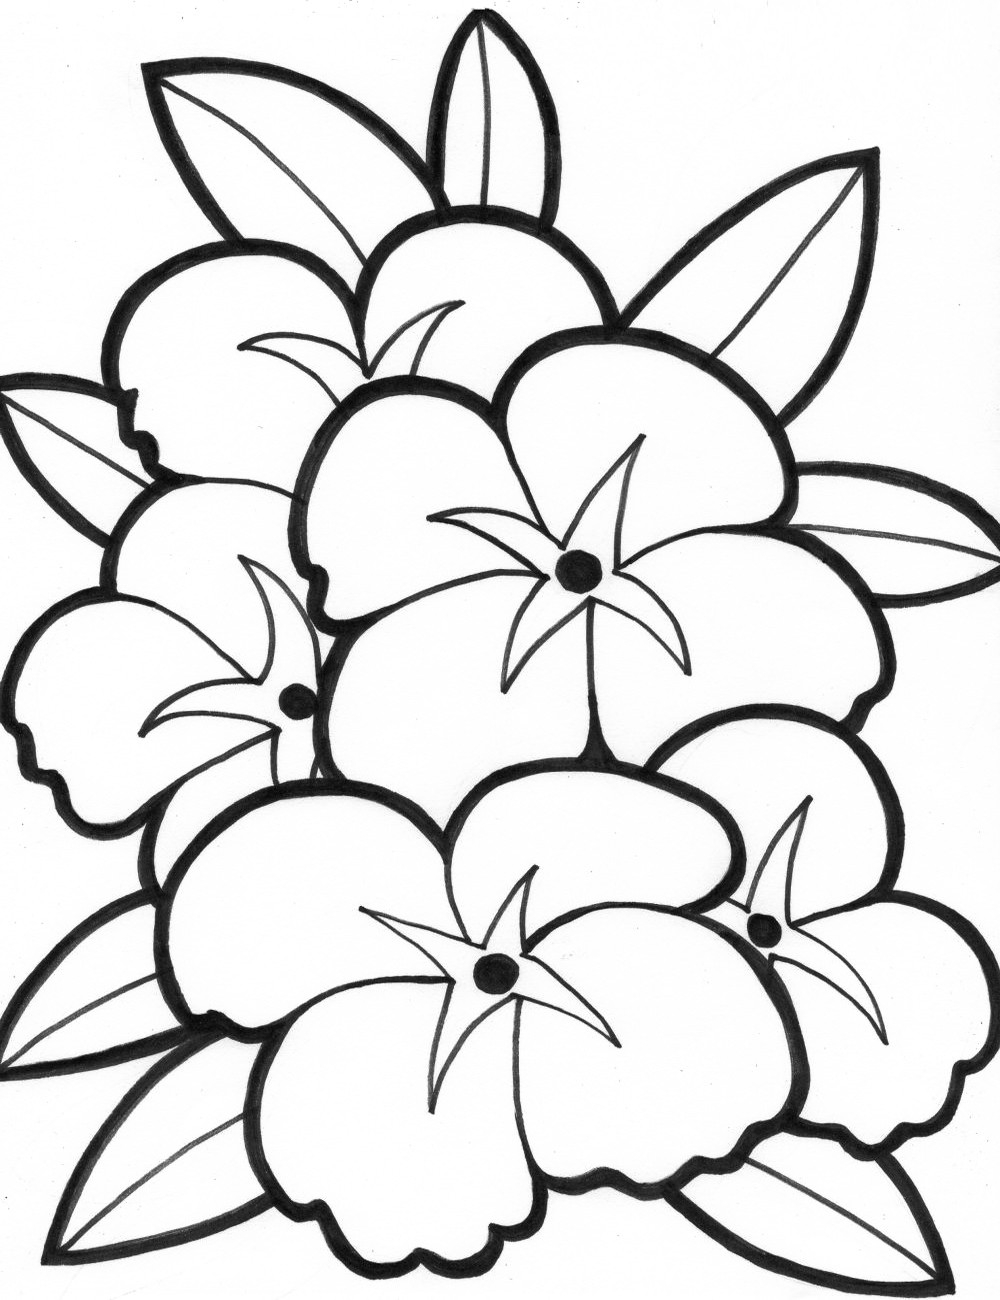 Flower Coloring Pages Download | Free Coloring Sheets